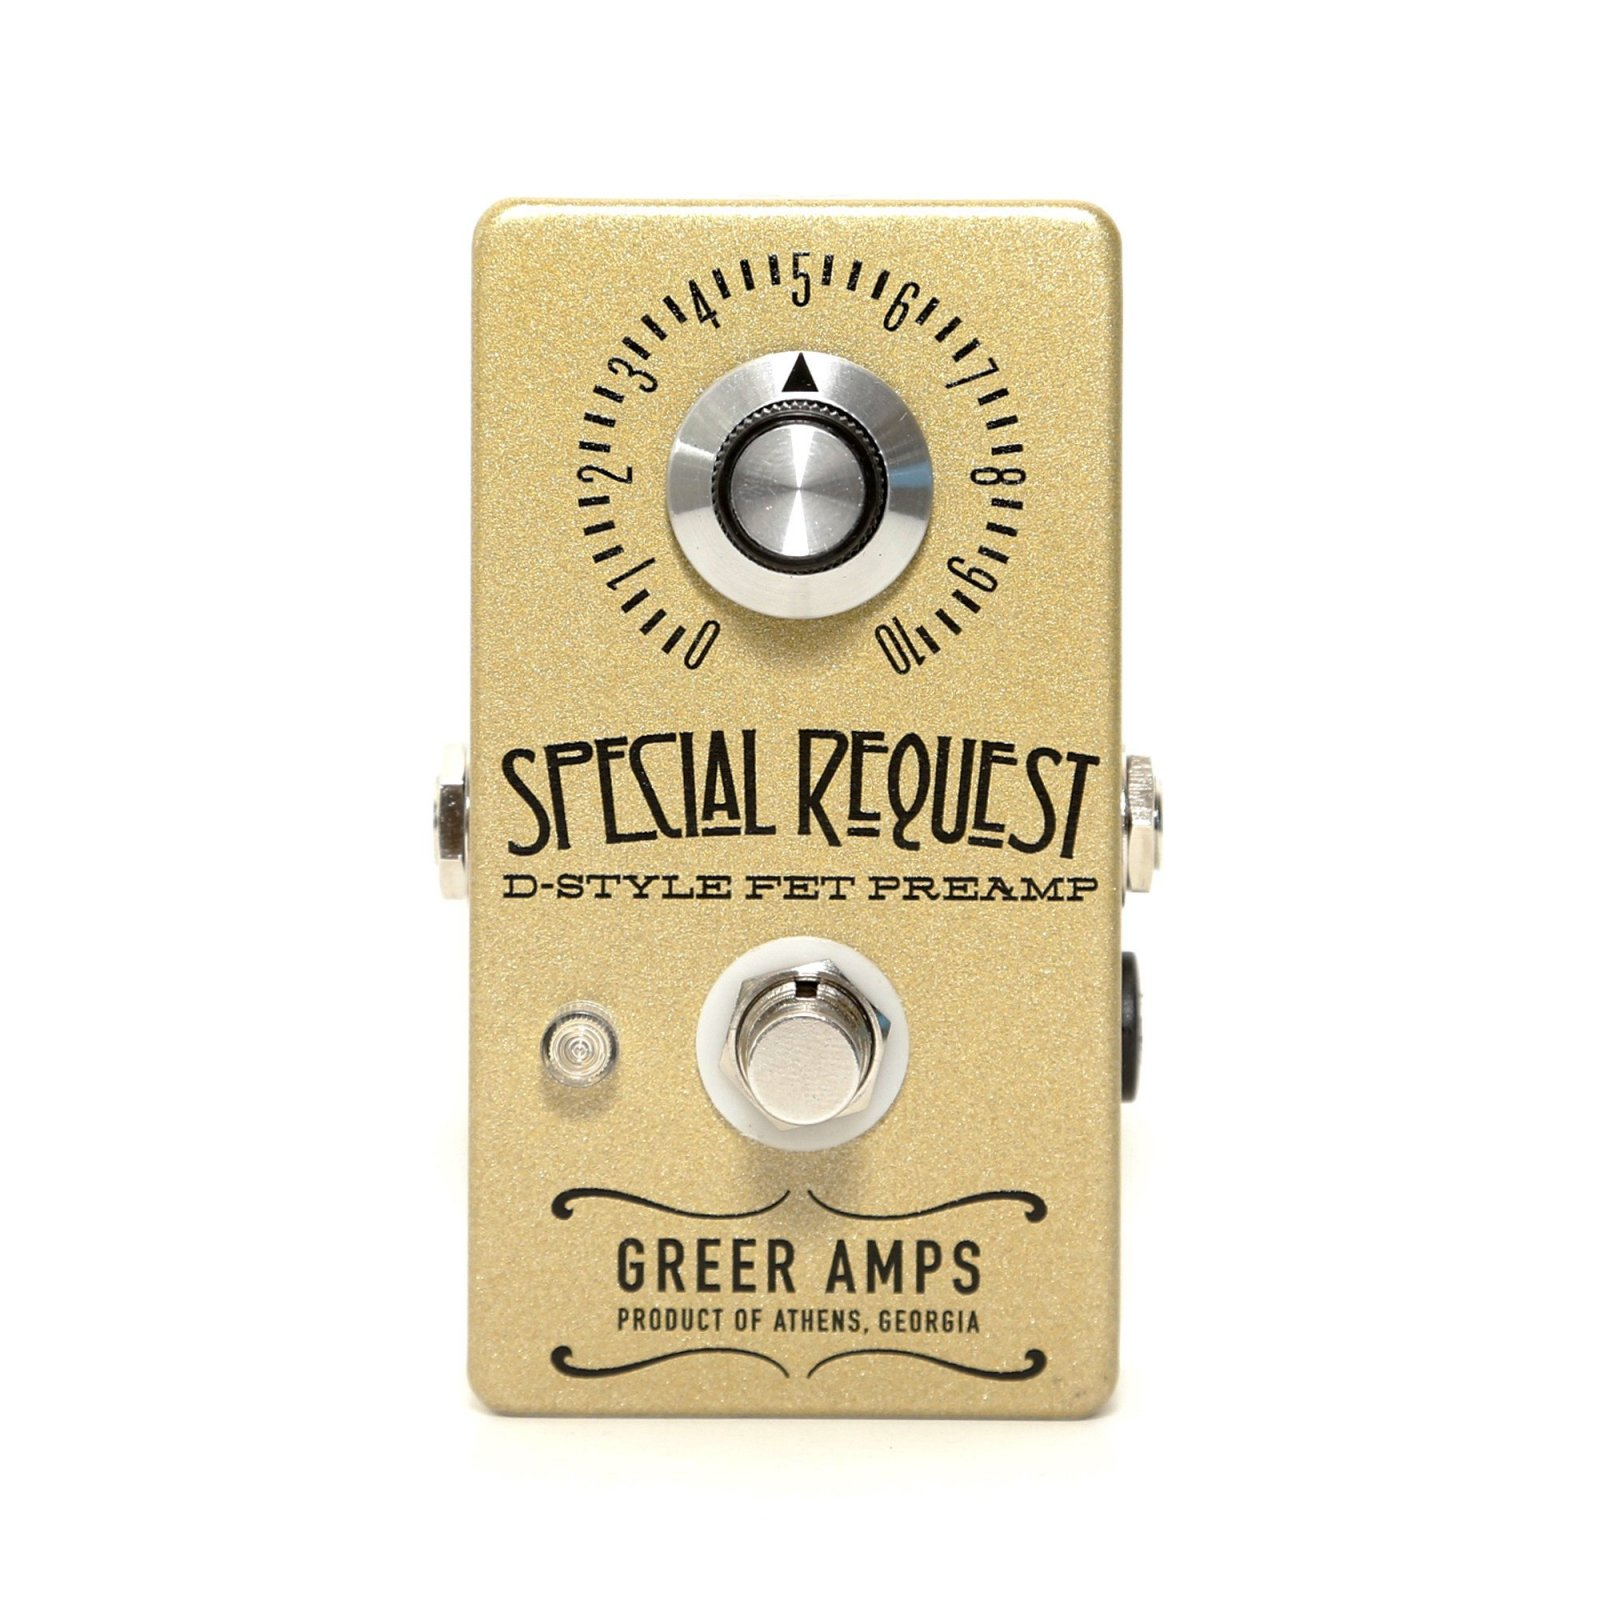 Greer Amps Special Request DFET Preamp